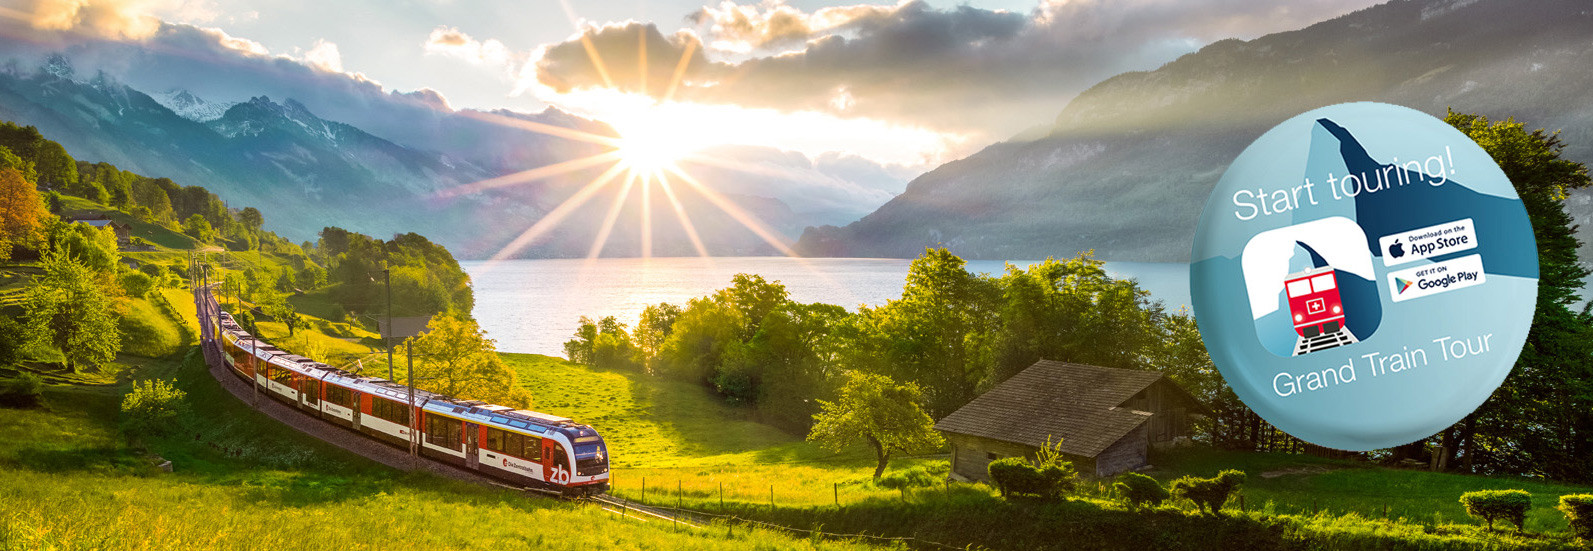 Experience the most beautiful sides of Switzerland by train and boat.